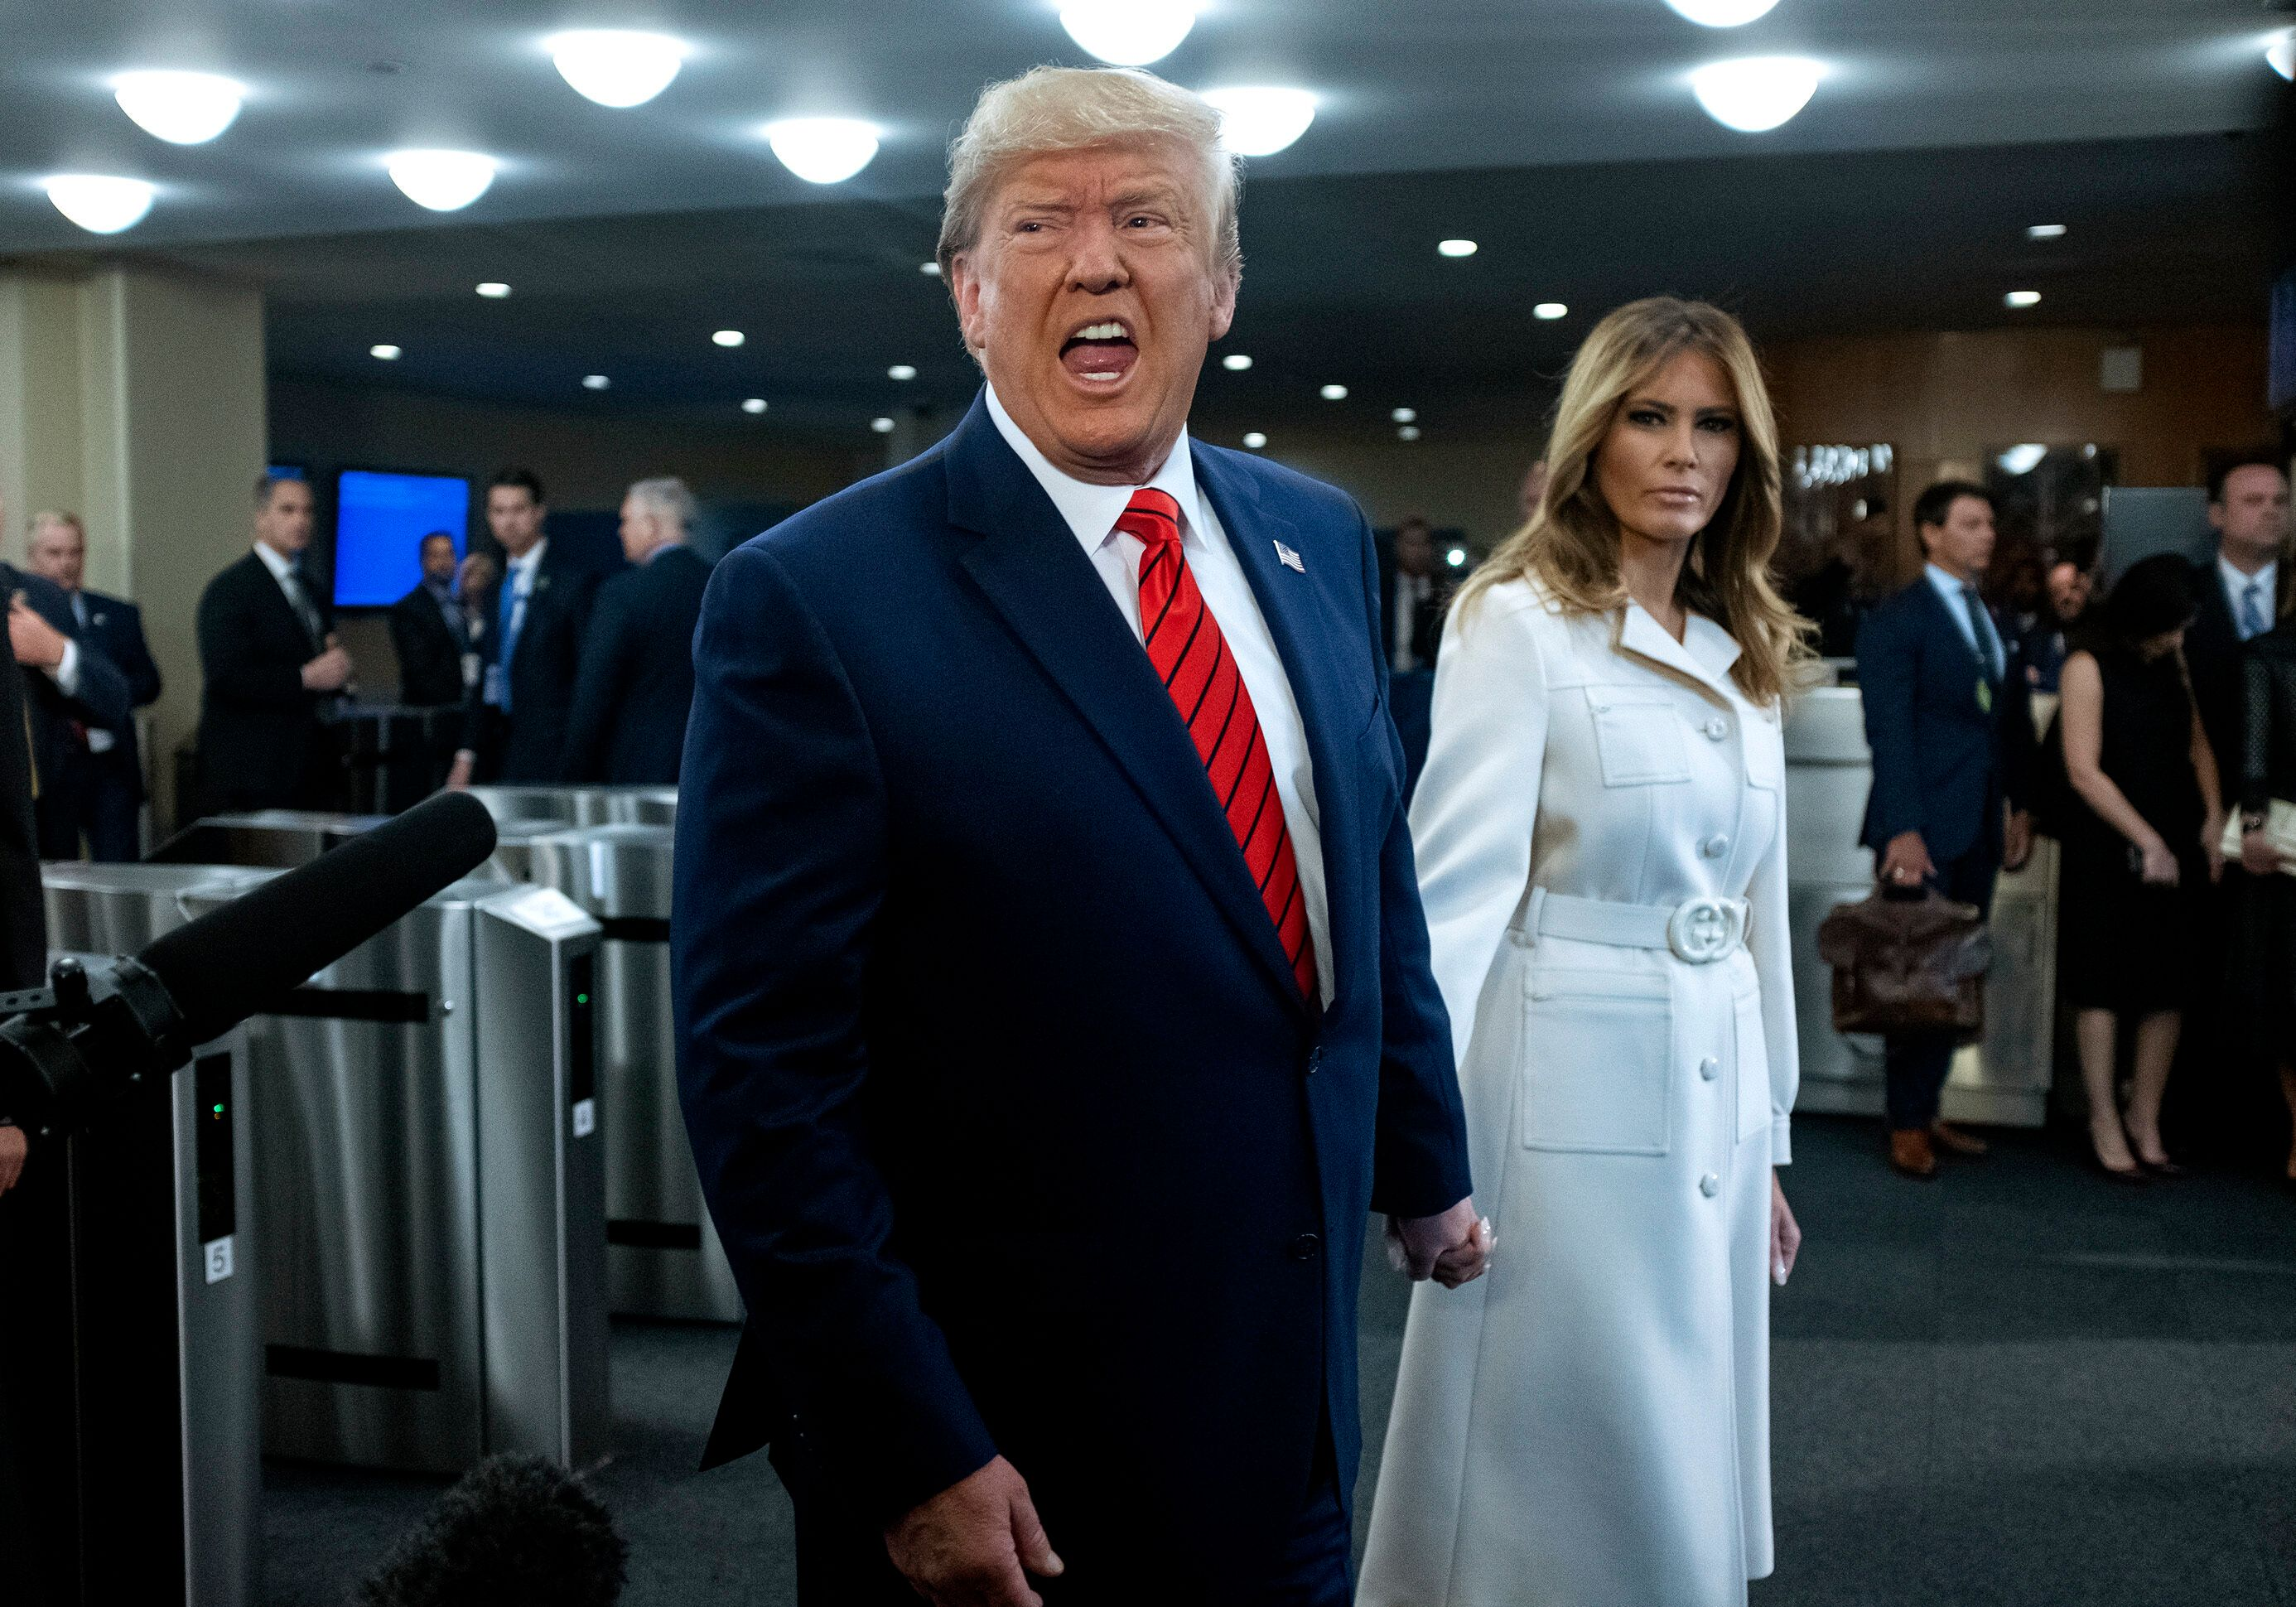 U.S. President Donald Trump addresses reporters as he arrives with first lady Melania Trump for the 74th session of the Unite